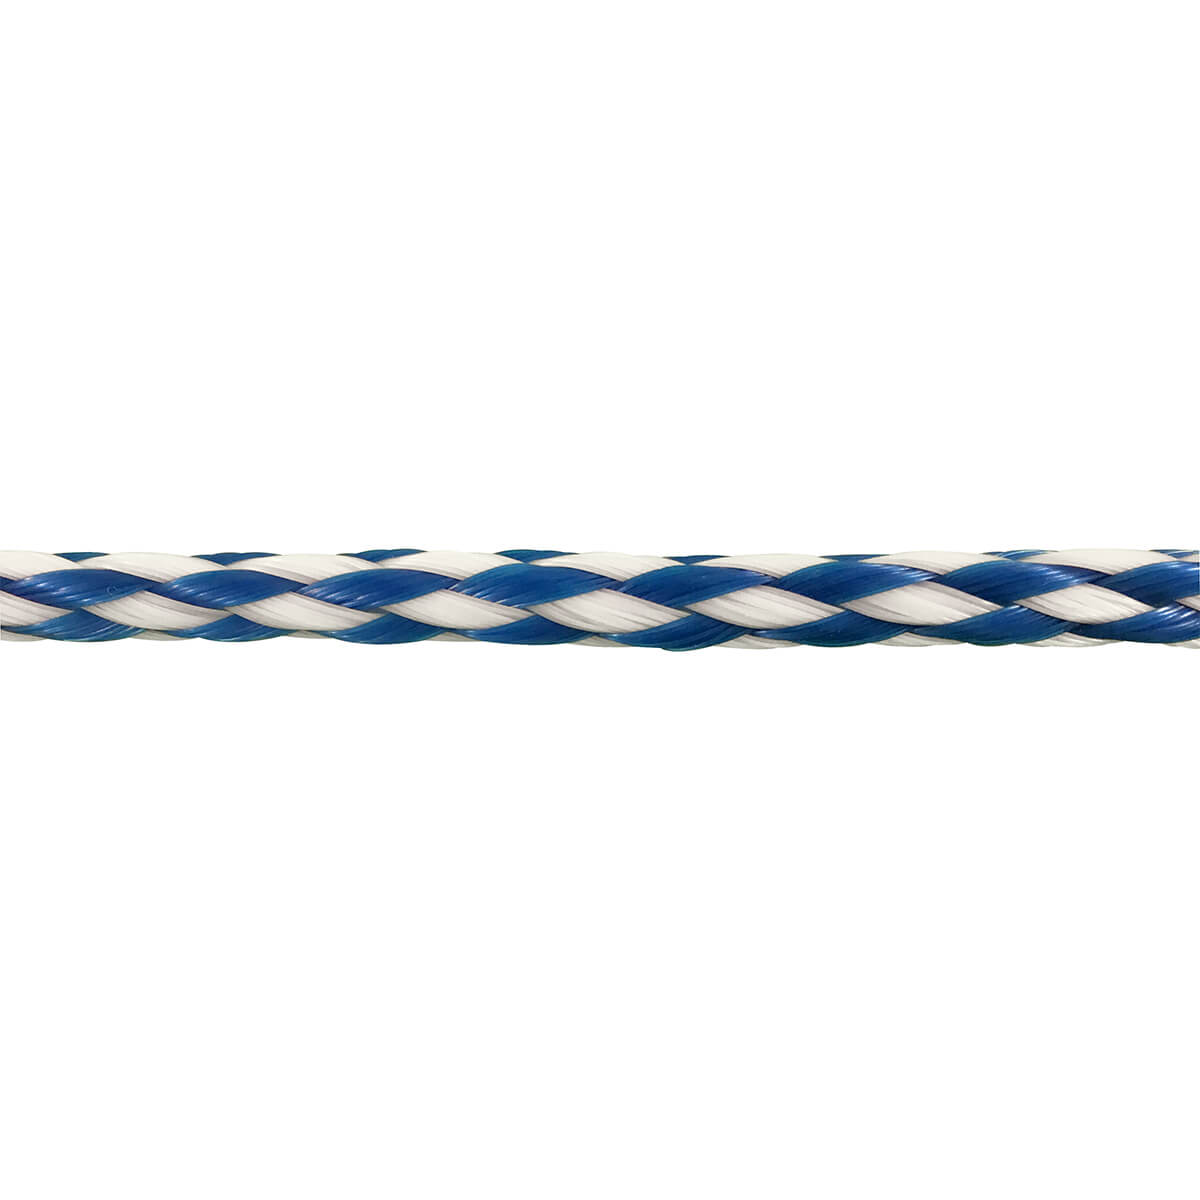 Polypropylene Hollow Core Rope - Blue/White - 3/8-in x 50-ft